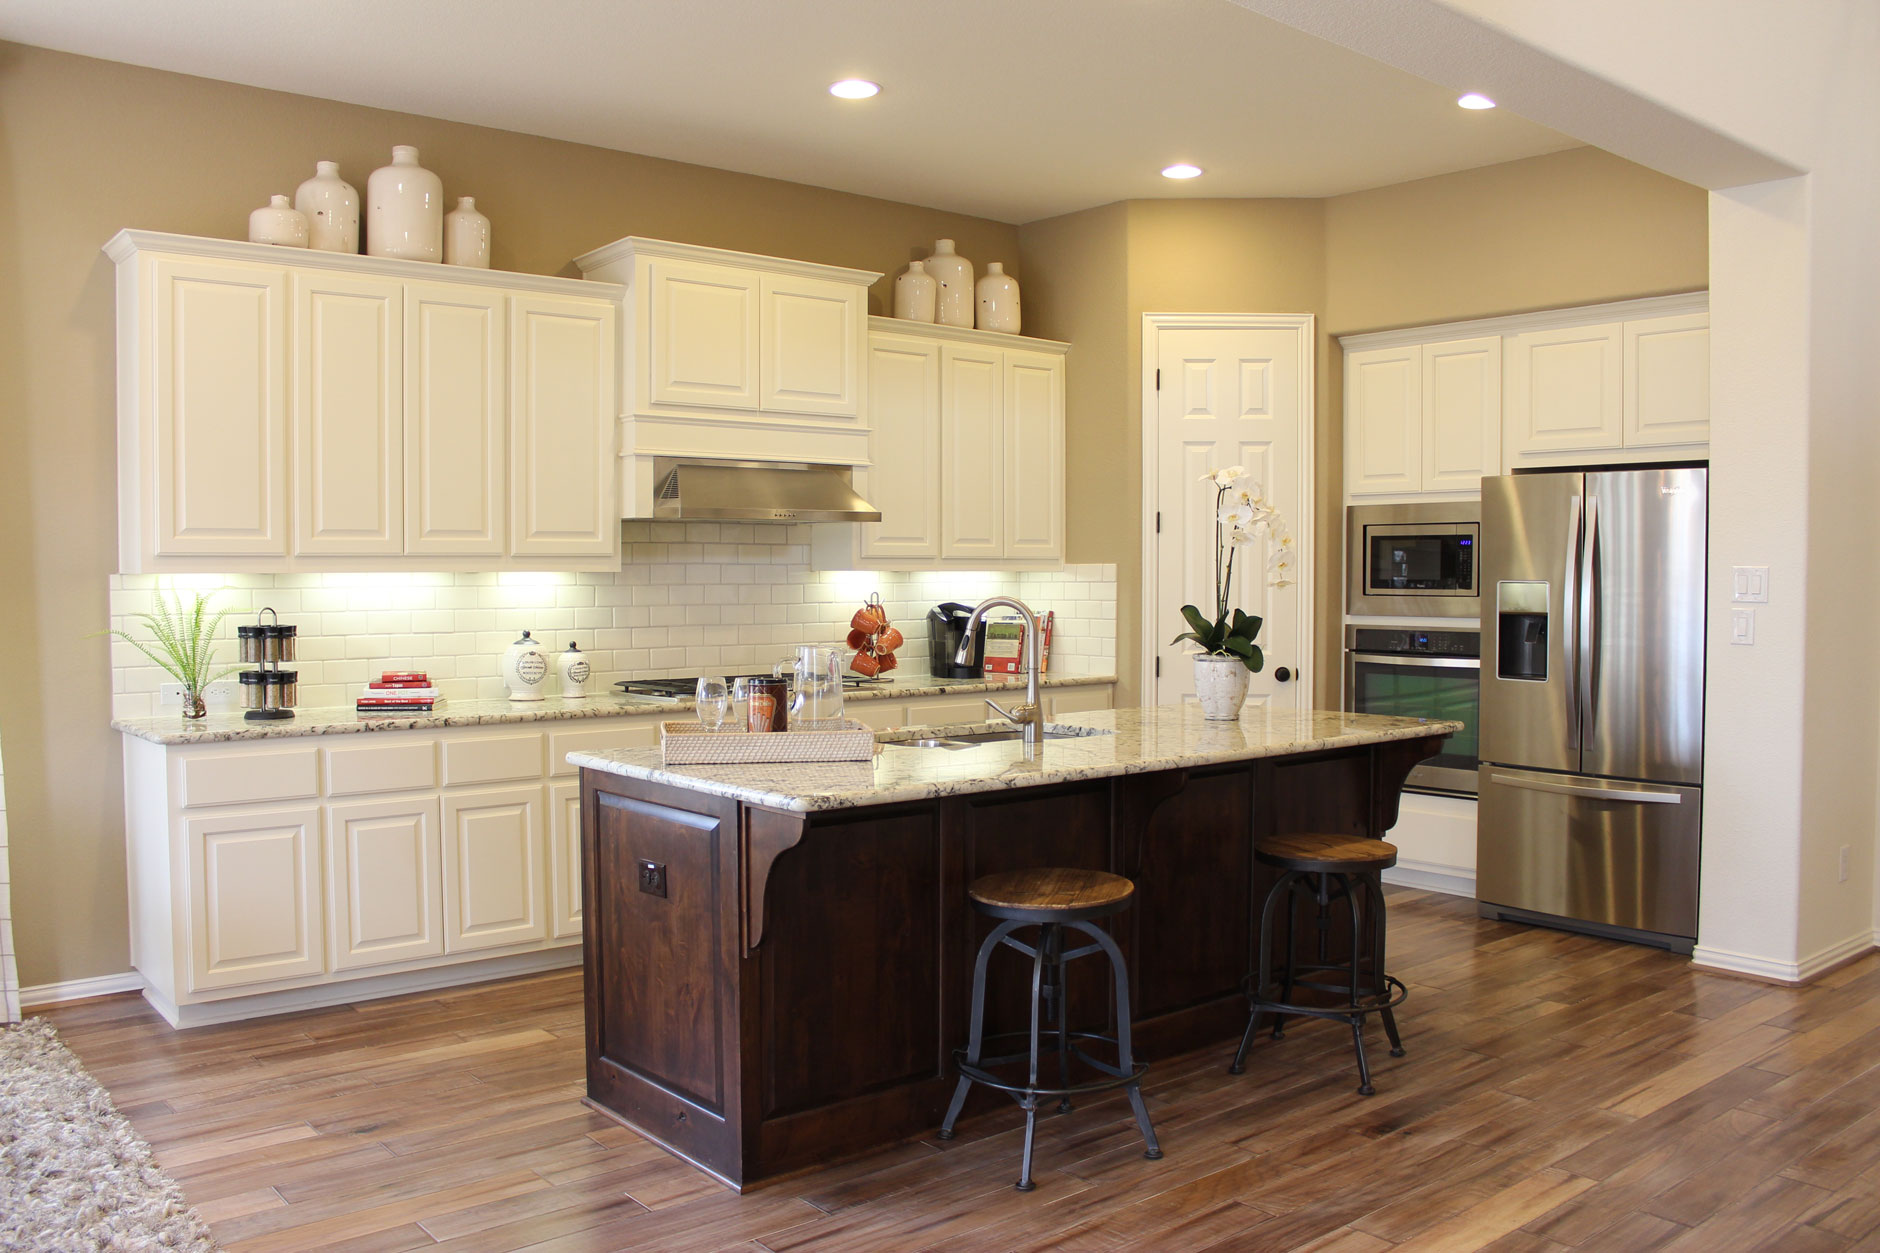 White Kitchen Cabinets Cabinet Design Tips White Kitchen Cabinets